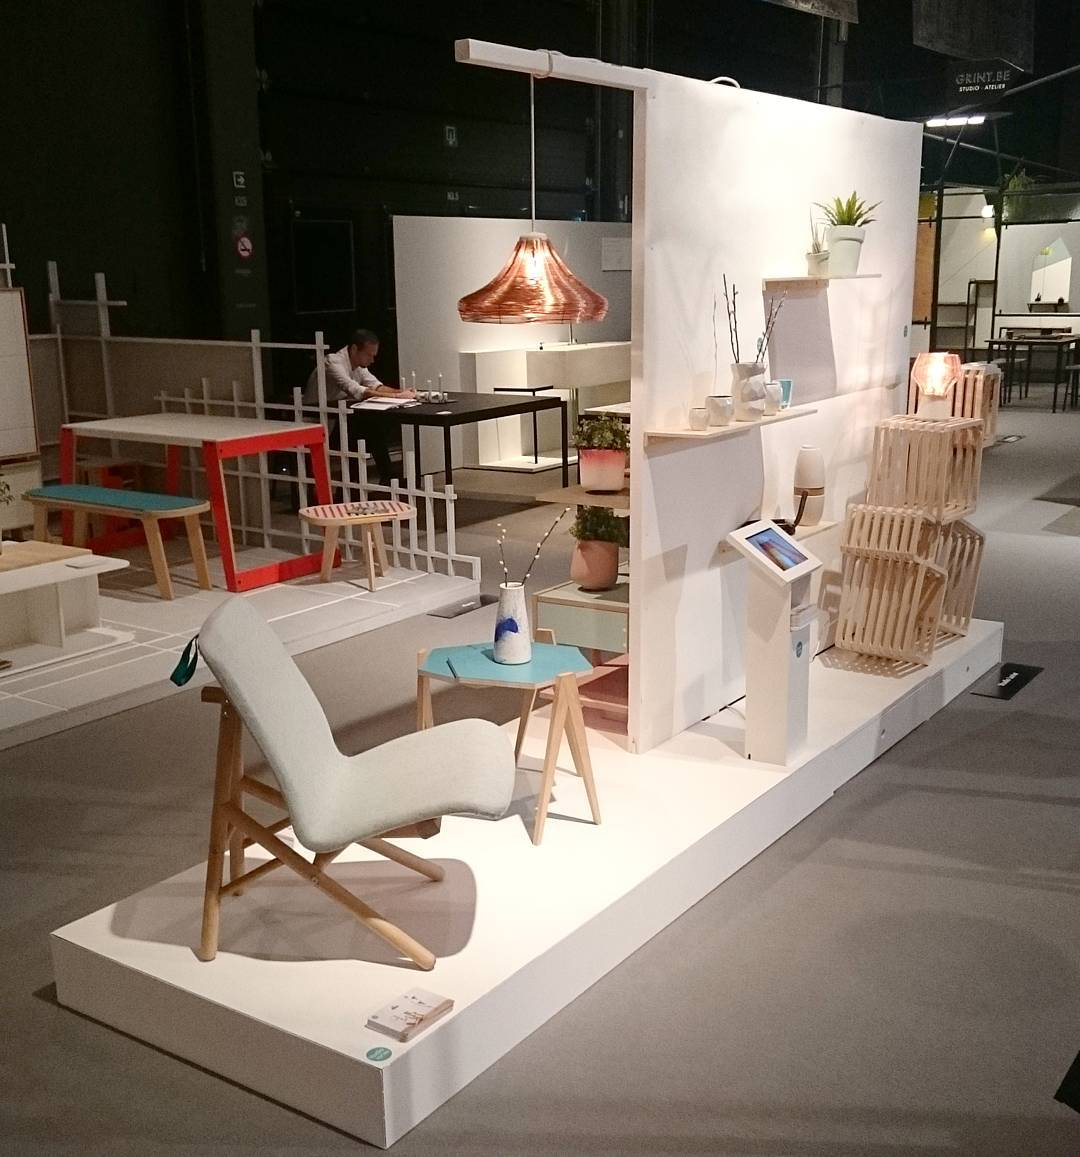 All set for day 2 @interieur_be. Now open for public